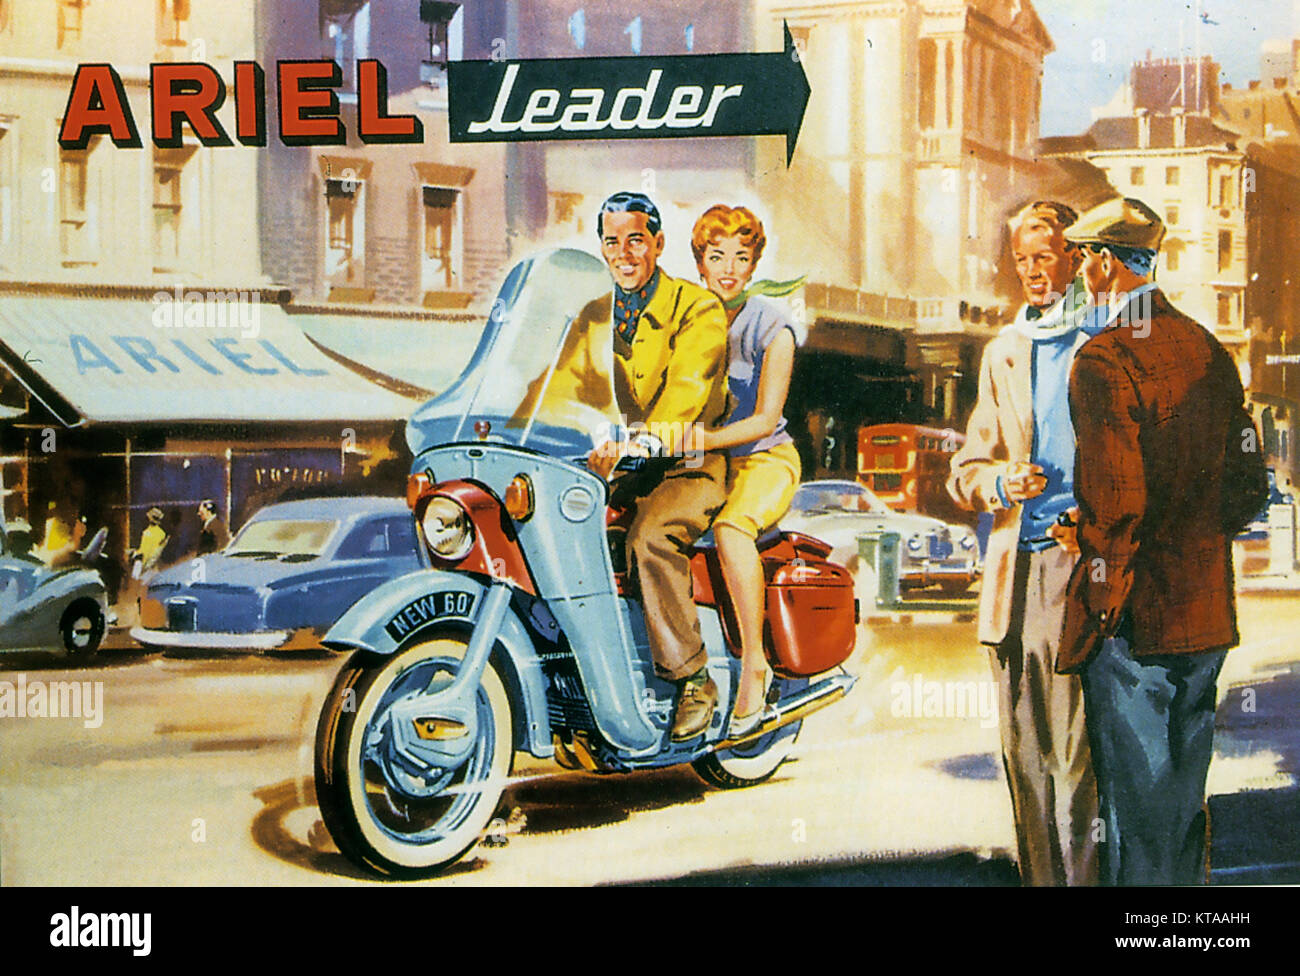 ARIEL MOTORCYCLES A 1959 advert for the 250cc two stroke Leader model - Stock Image